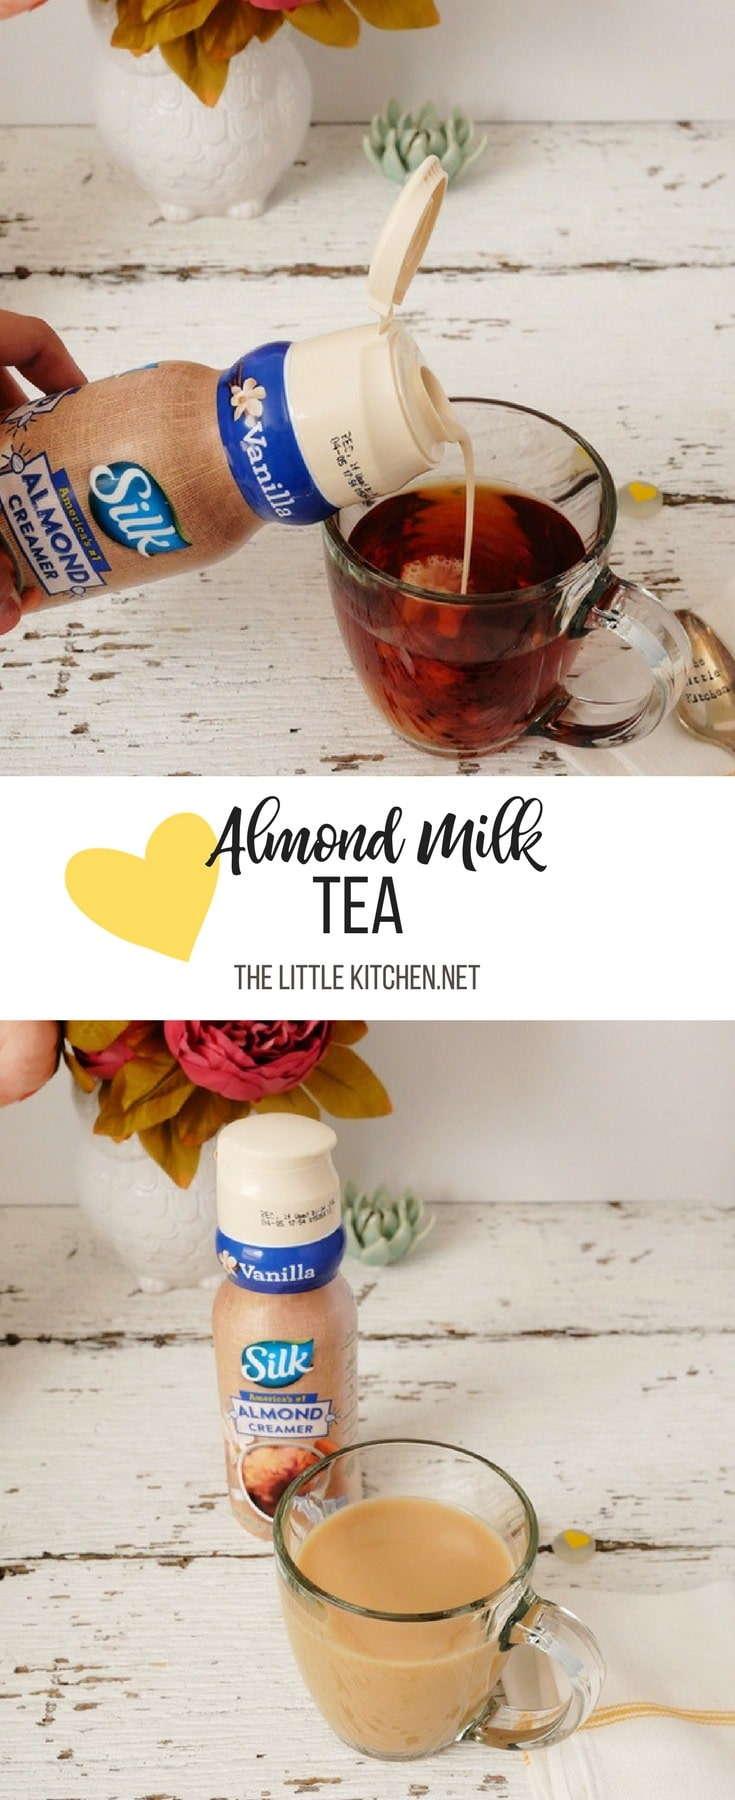 Almond Milk Tea thelittlekitchen.net